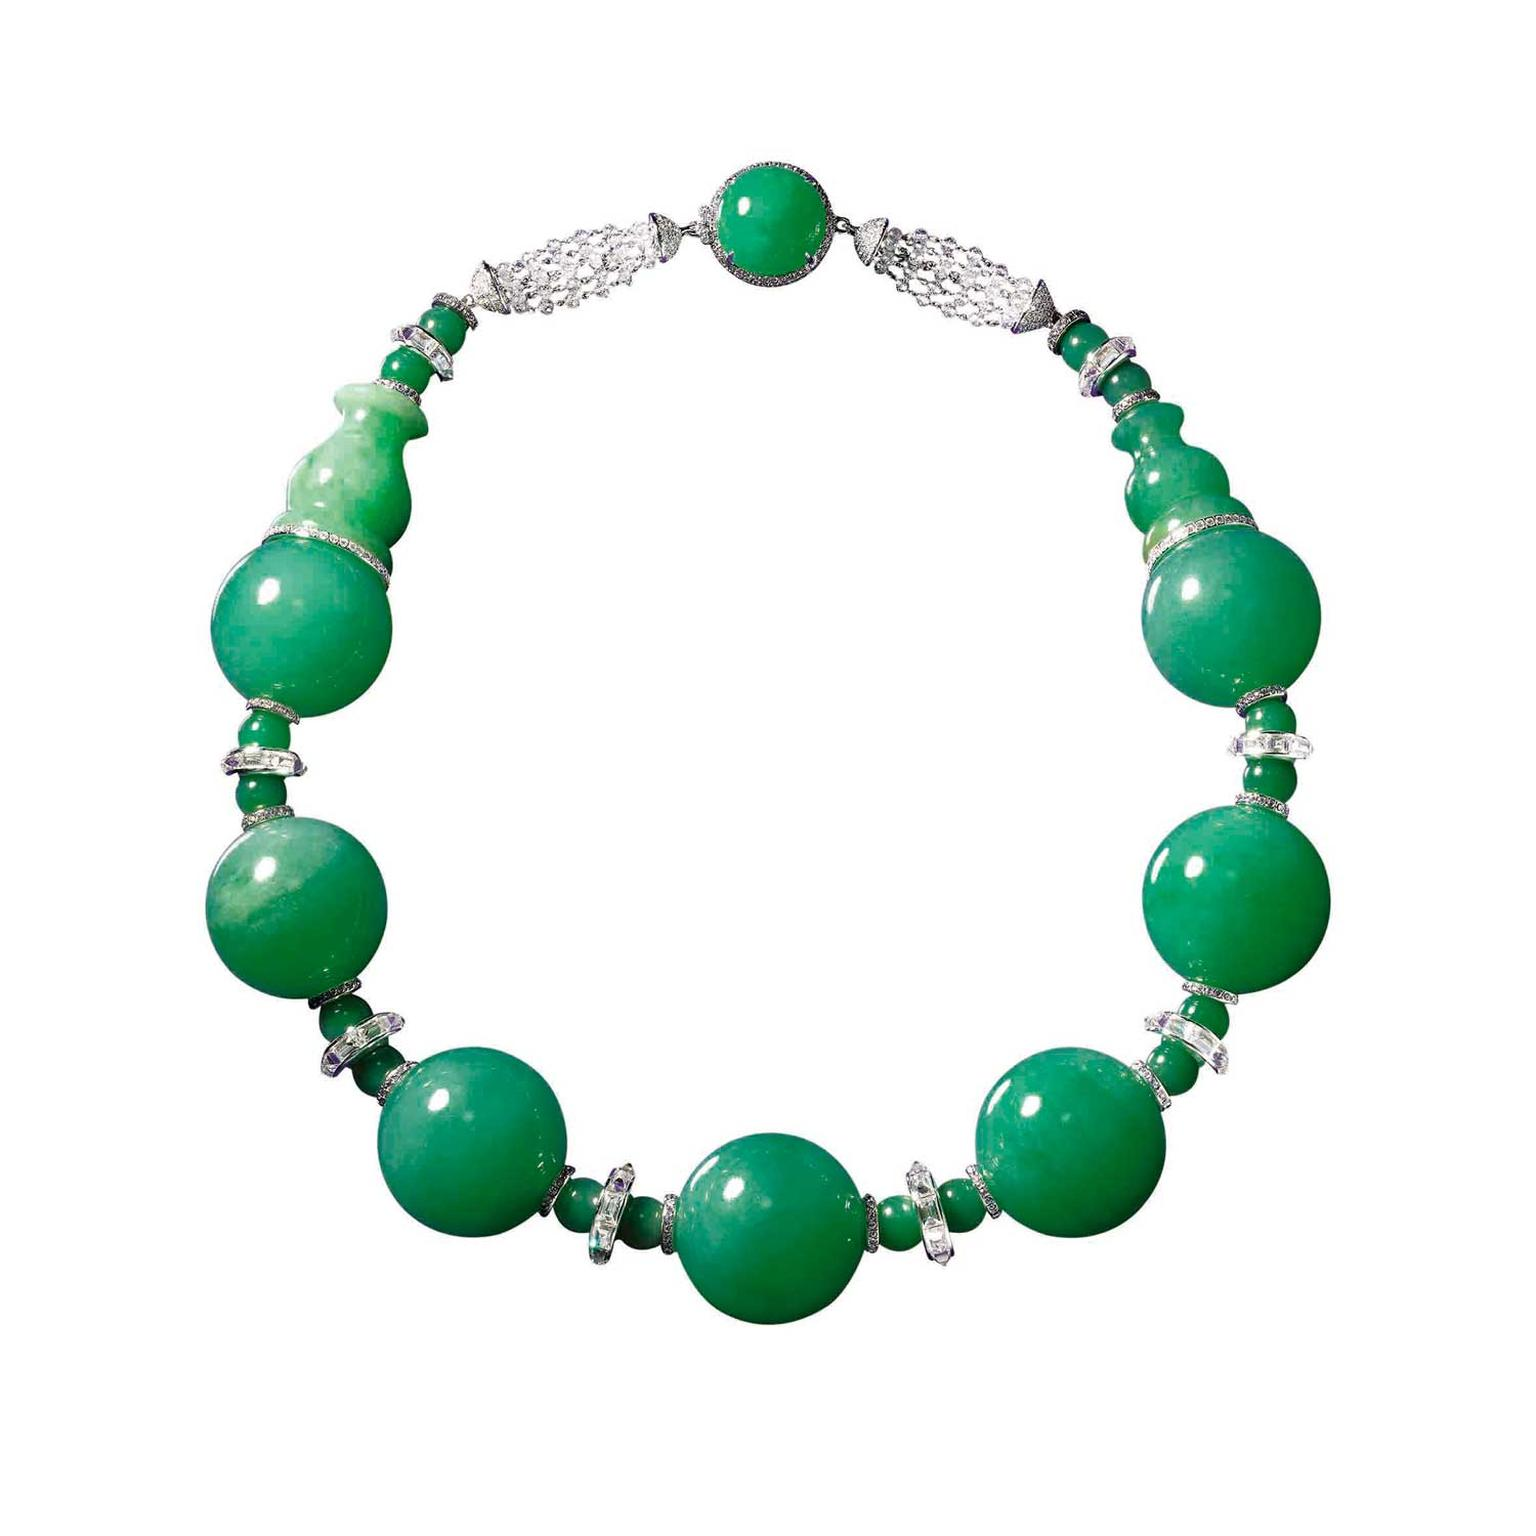 Boghossian Imperial jadeite bead necklace